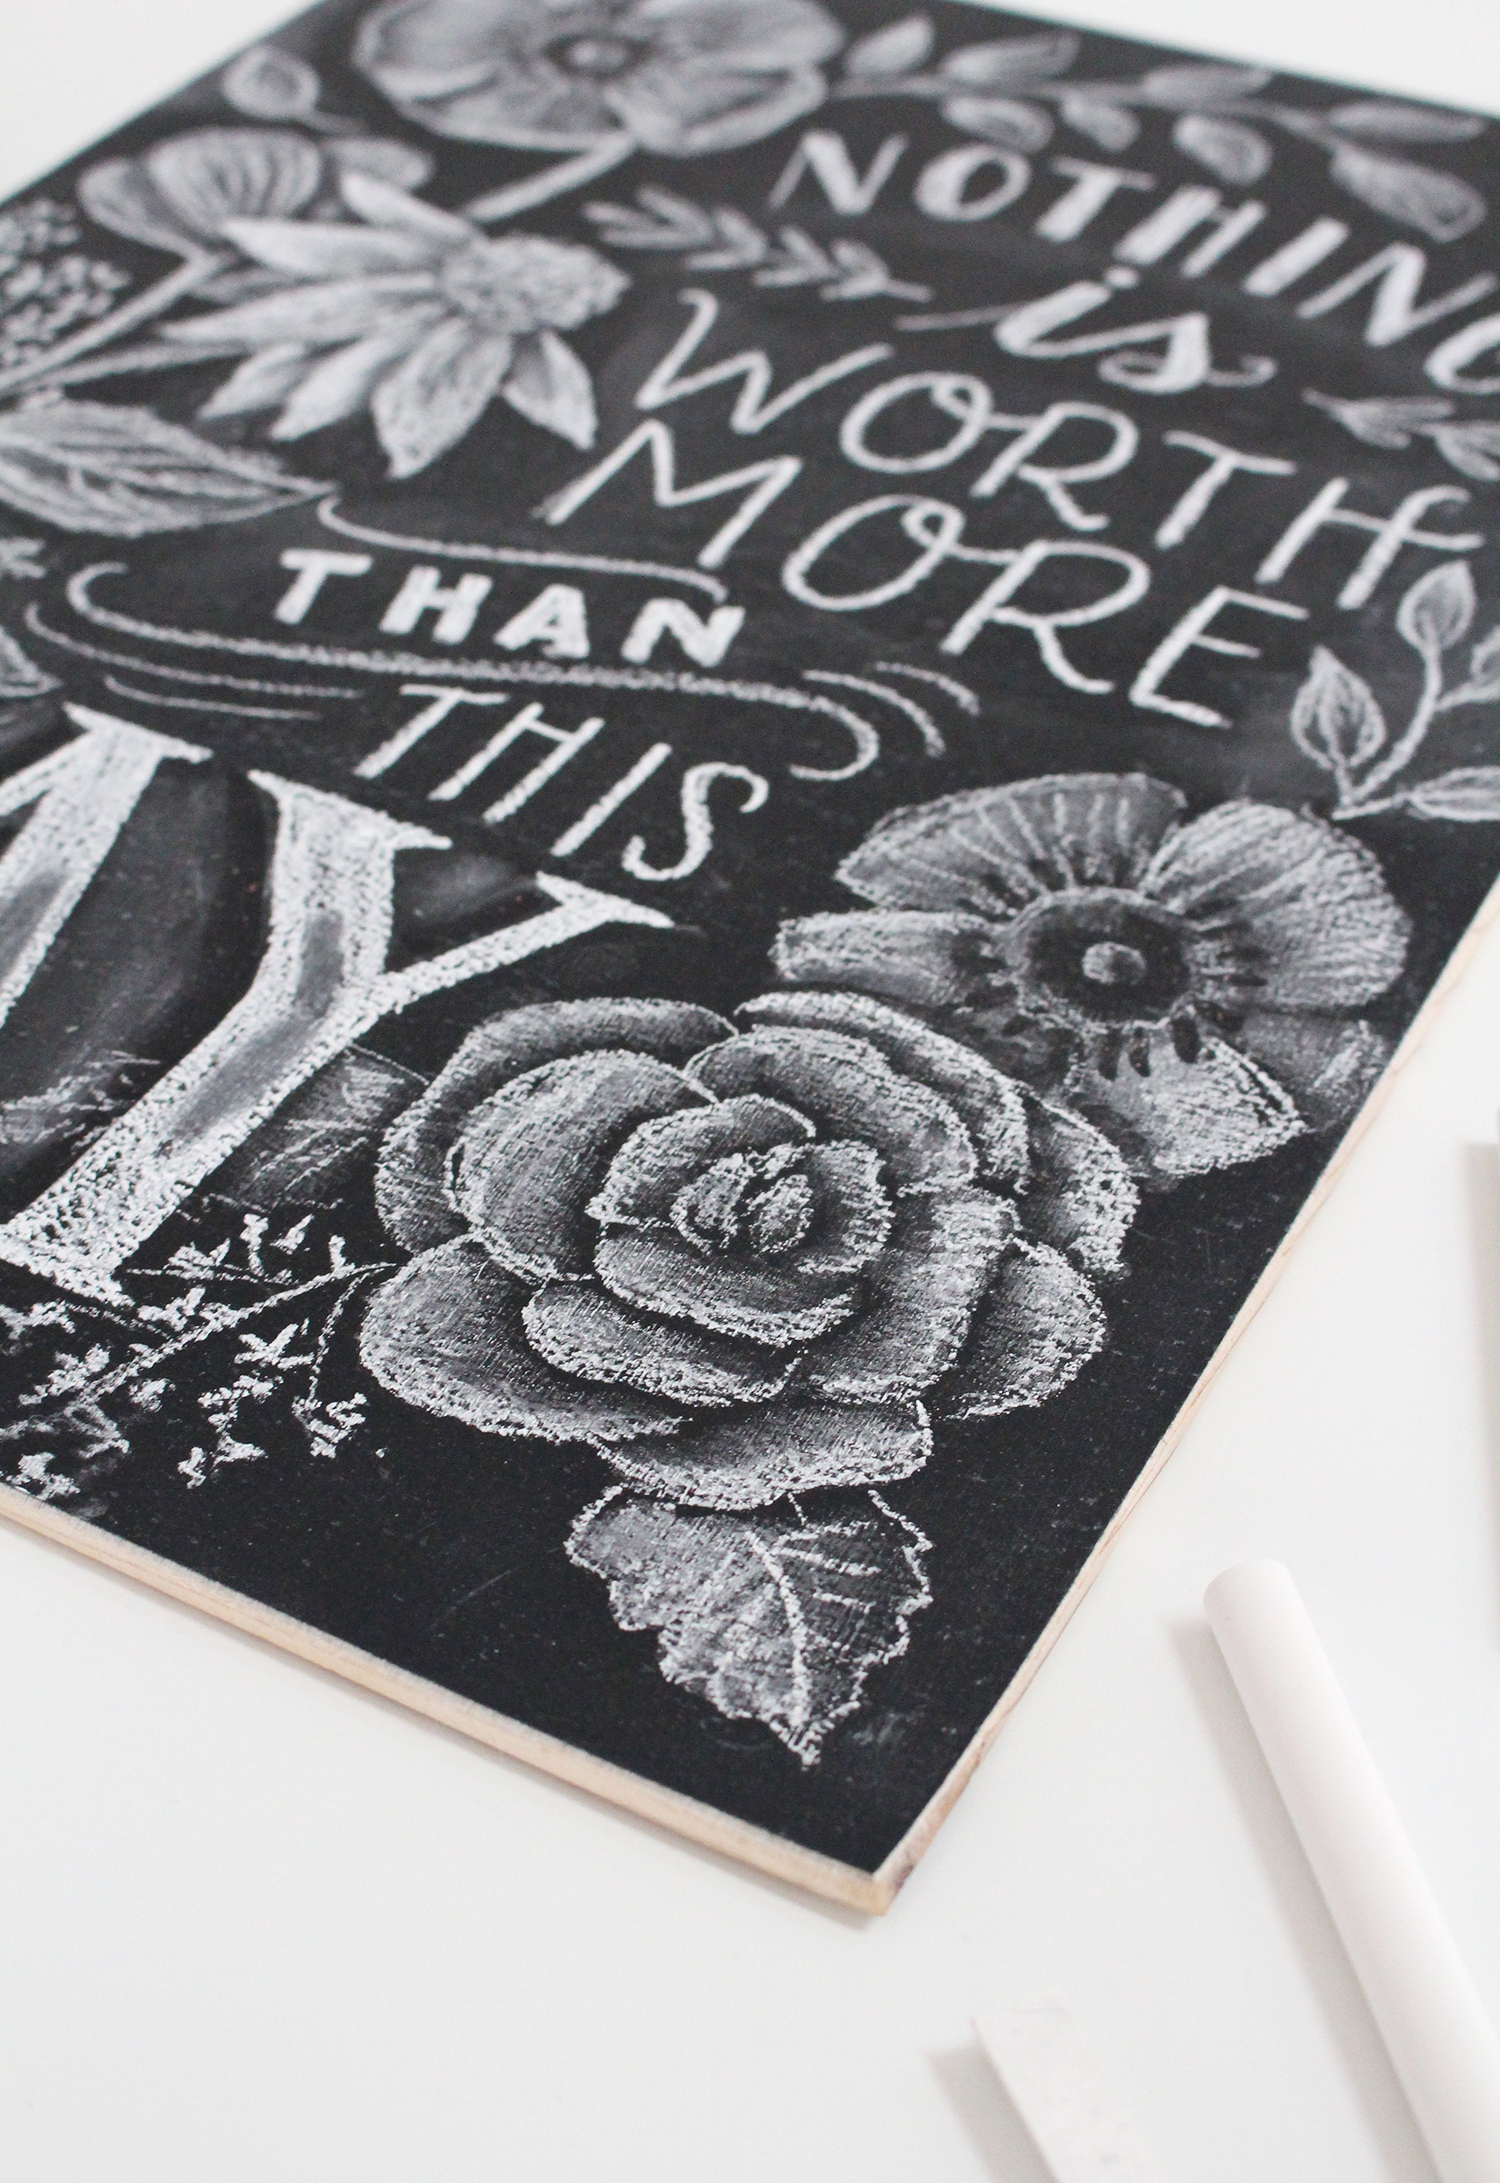 Introducing Chalk Project Nights at the Lily & Val Flagship Store in Pittsburgh. Valerie Mckeehan will teach you all the steps for creating this chalkboard sign!